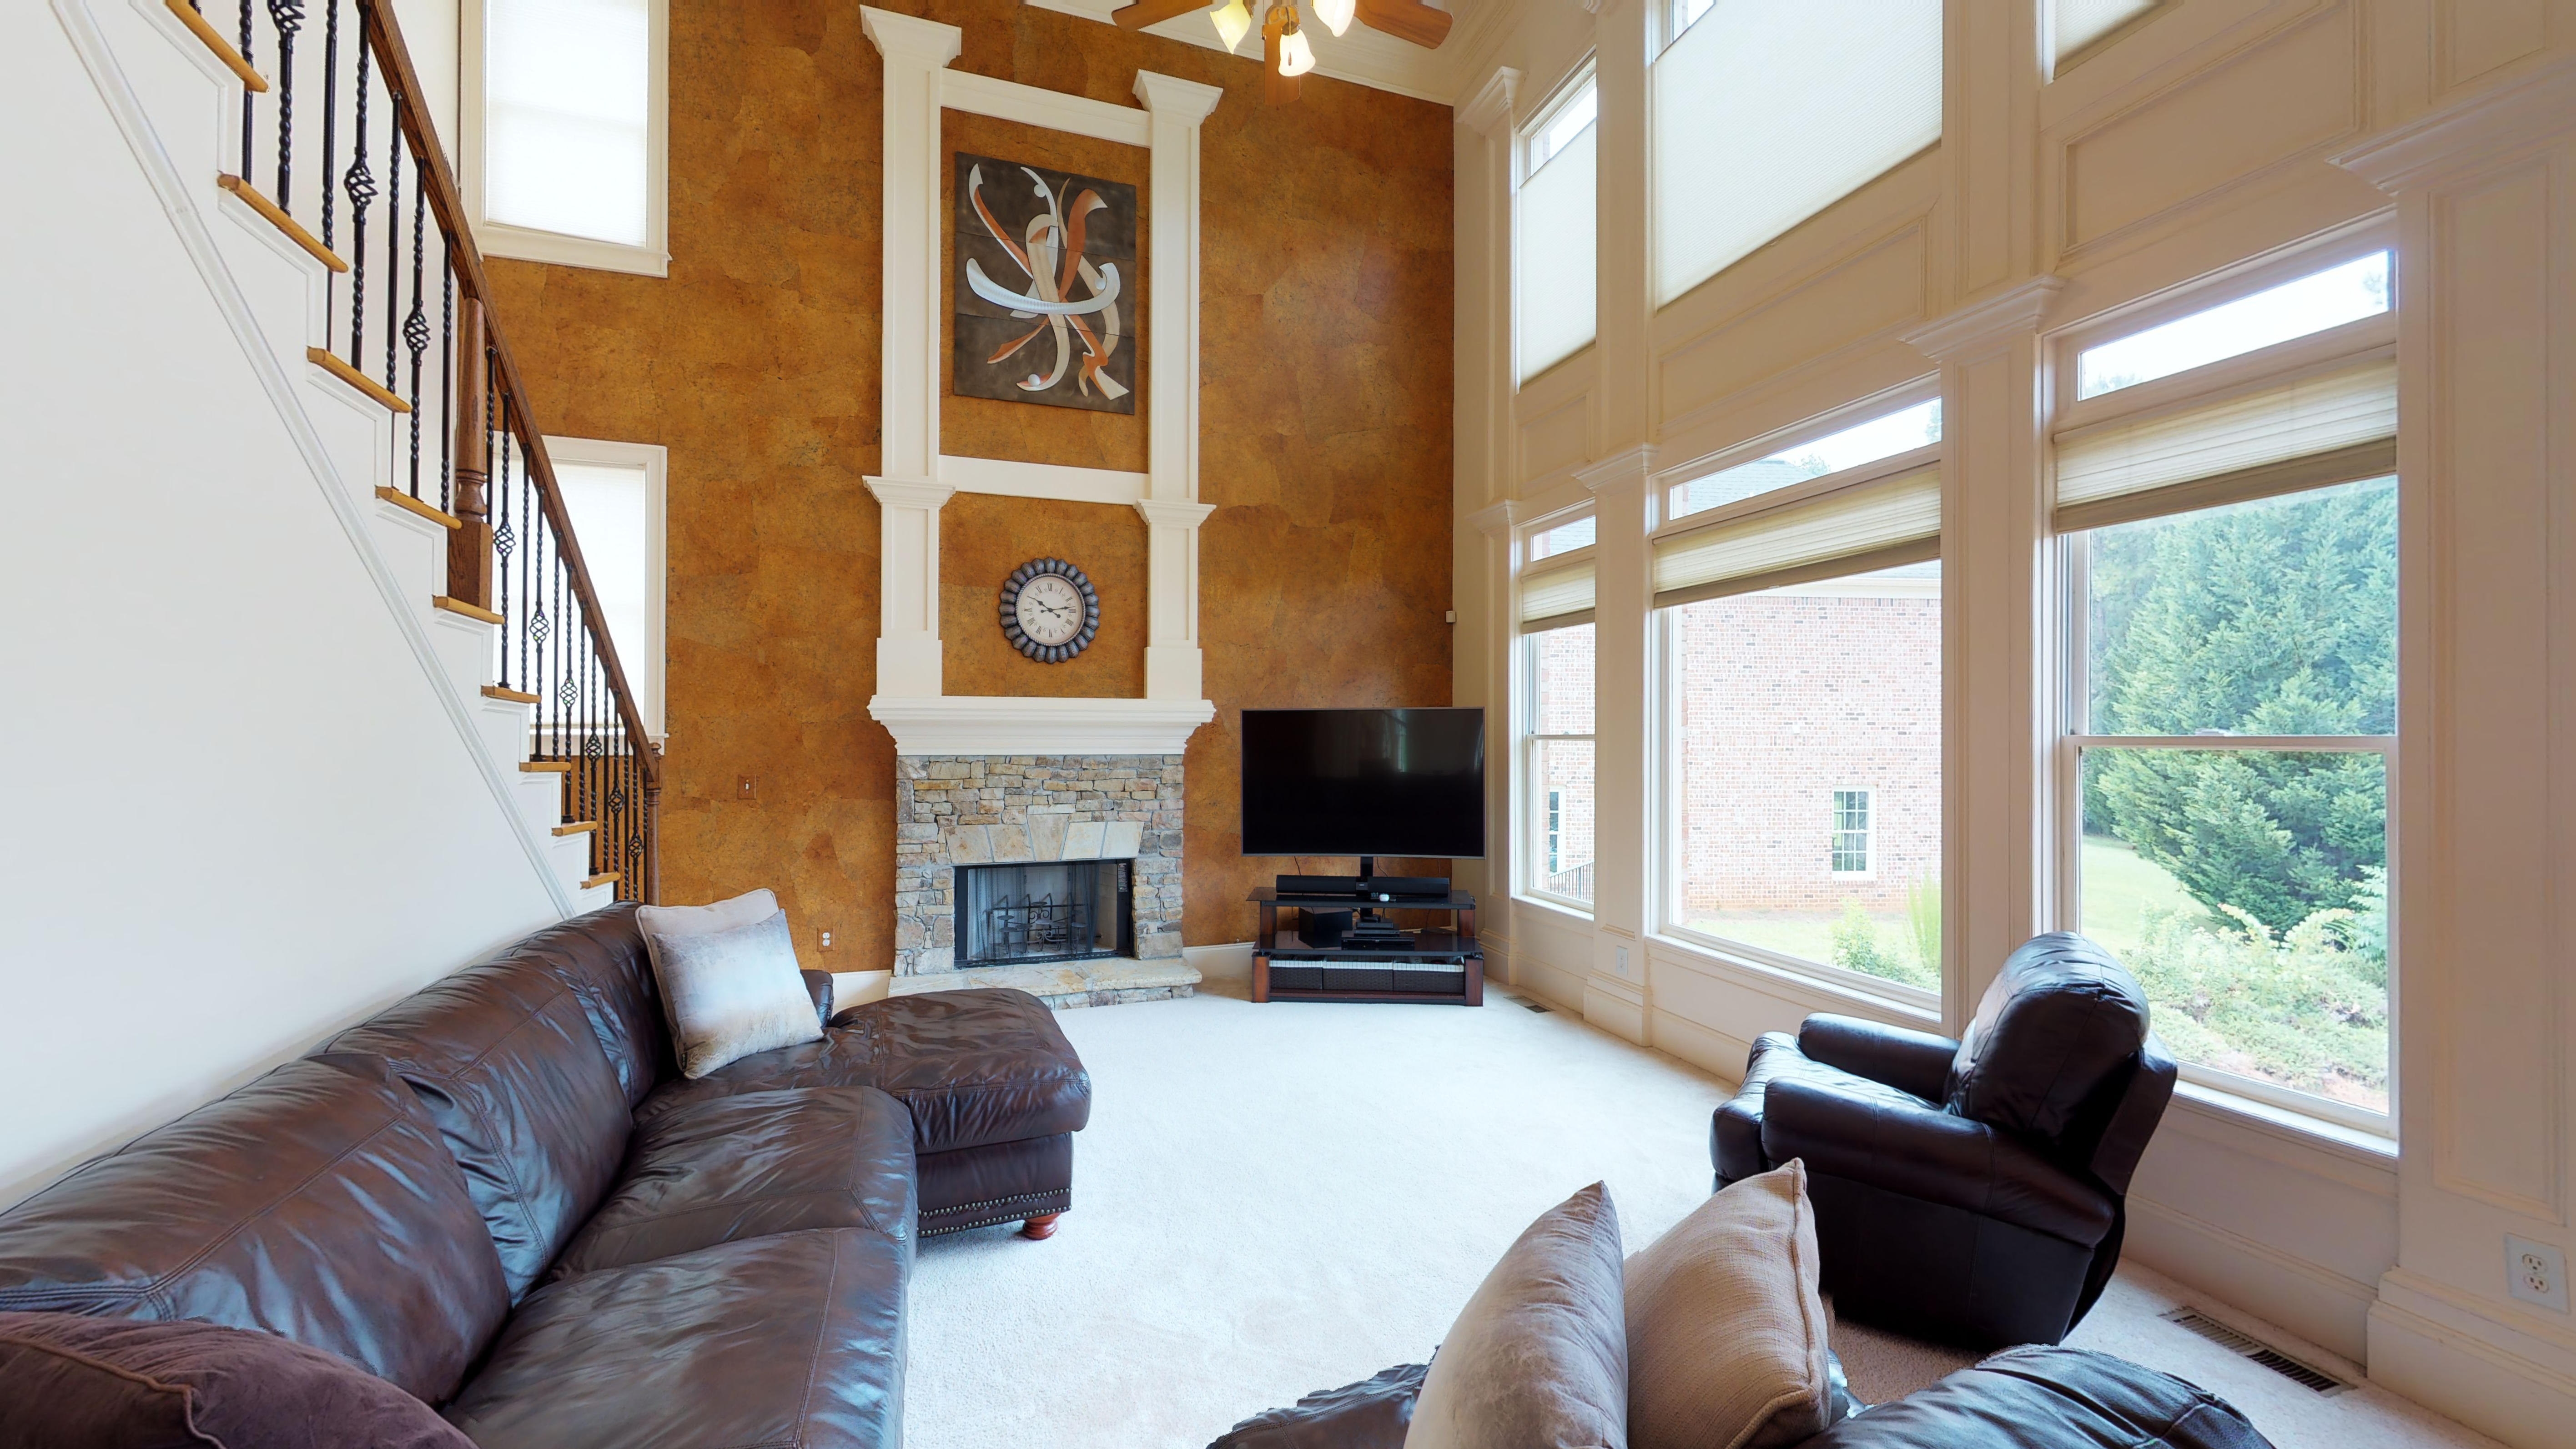 Immaculate brick home in Wynns Way